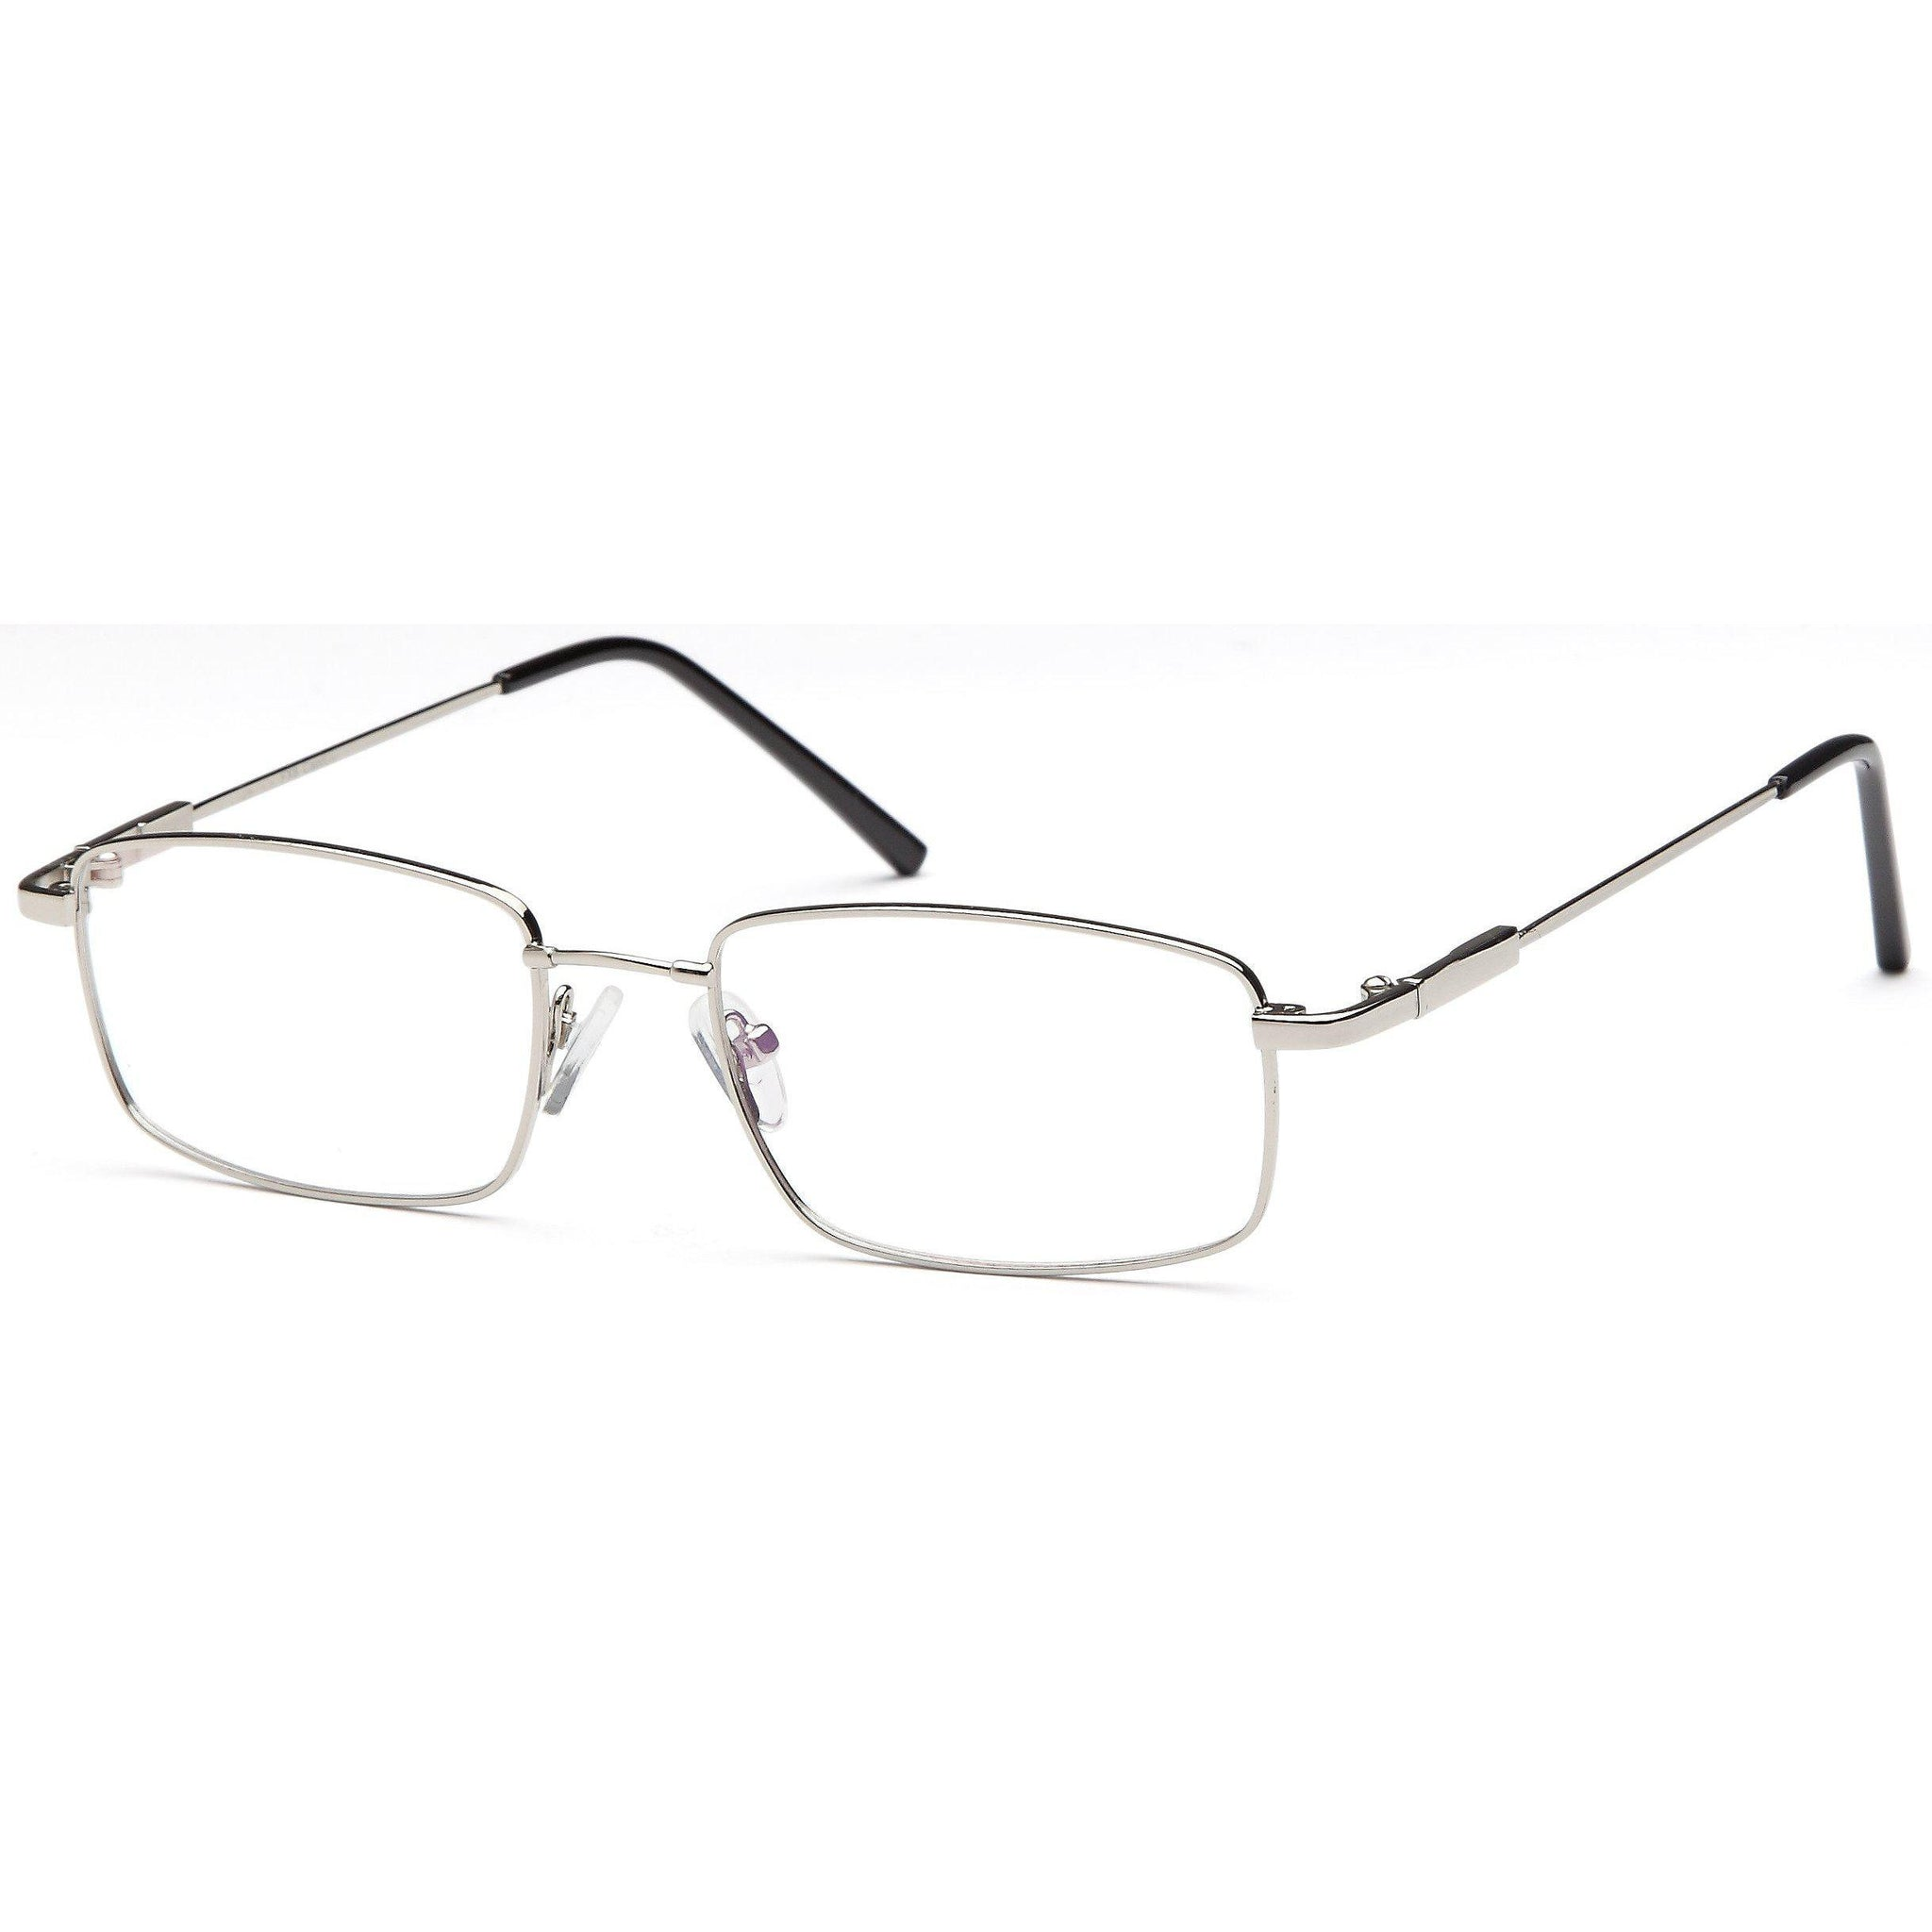 Titanium Prescription Glasses FX 8 Eyeglasses Frame